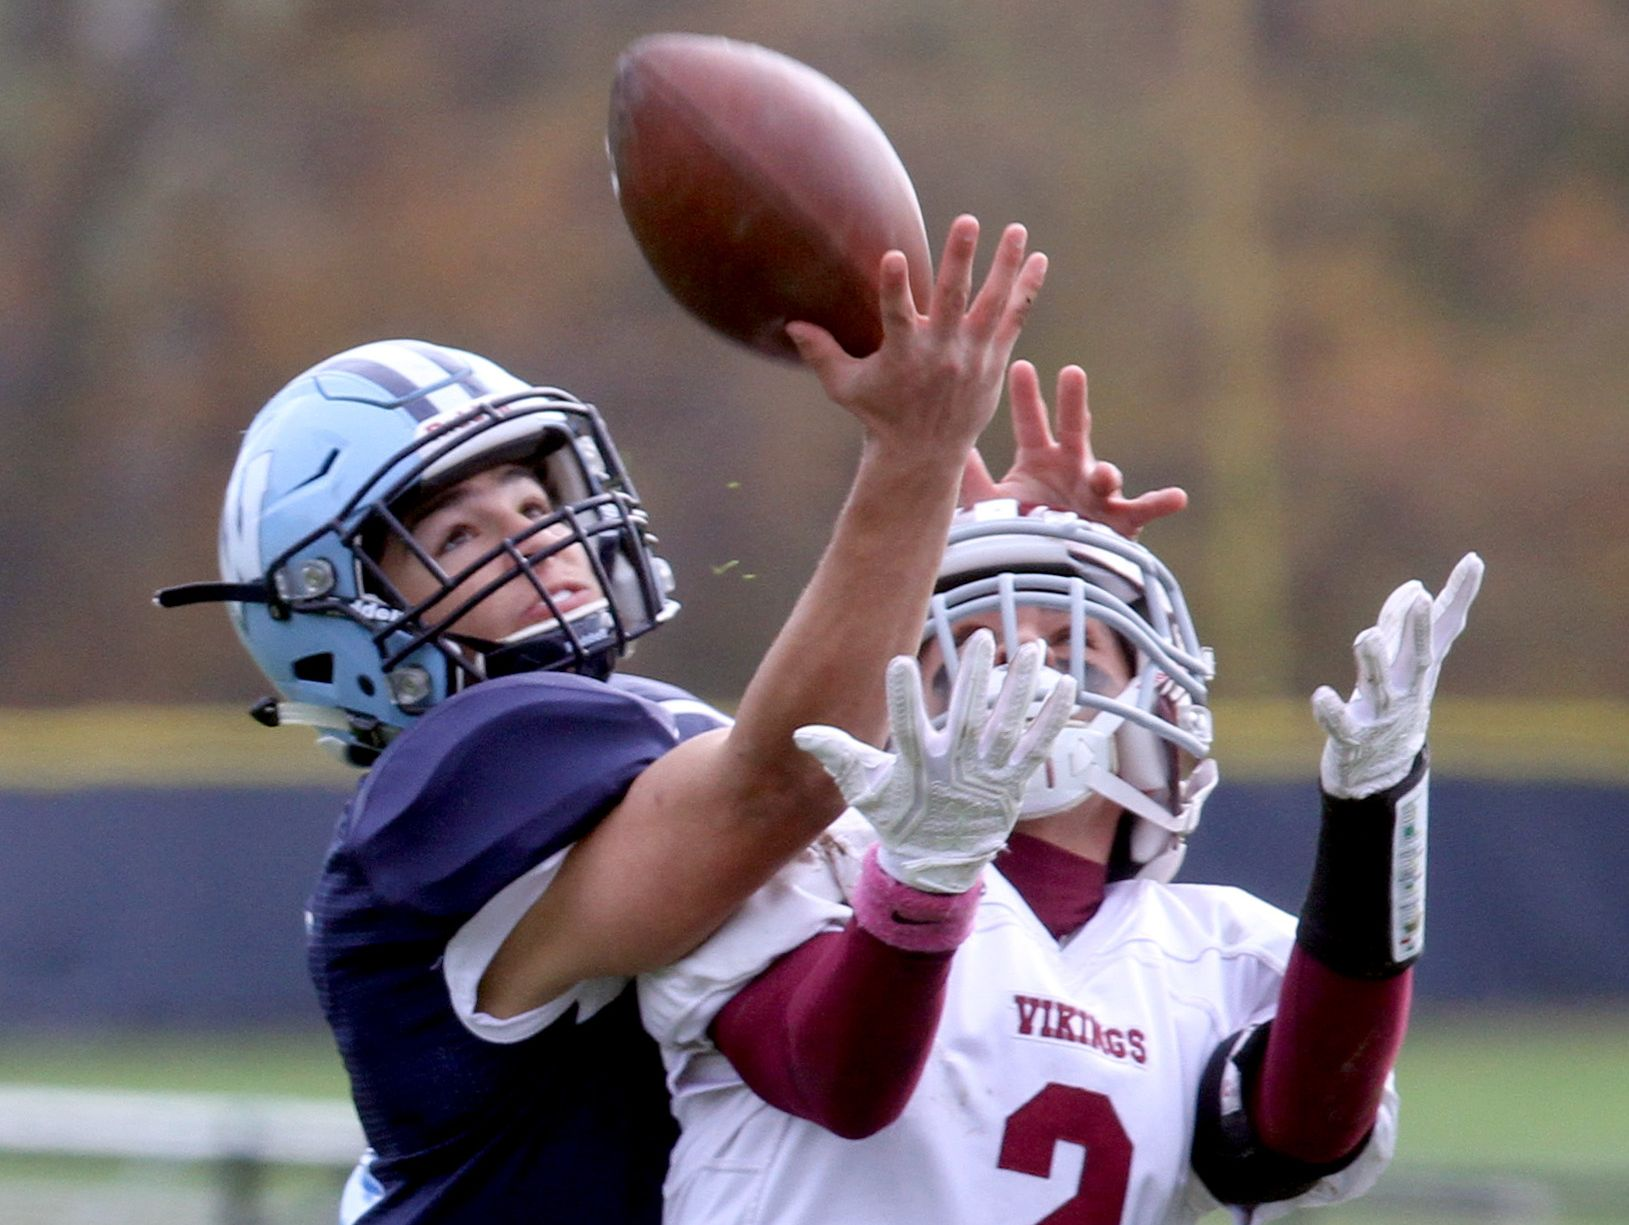 Westlake's Robert DiNota breaks up a pass intended for Valhalla's Michael Ferrara during a Class B semifinal football game at Westlake High School in Thornwood Oct. 29, 2016. DiNota had three interceptions as Westlake defeated Valhalla 35-3.